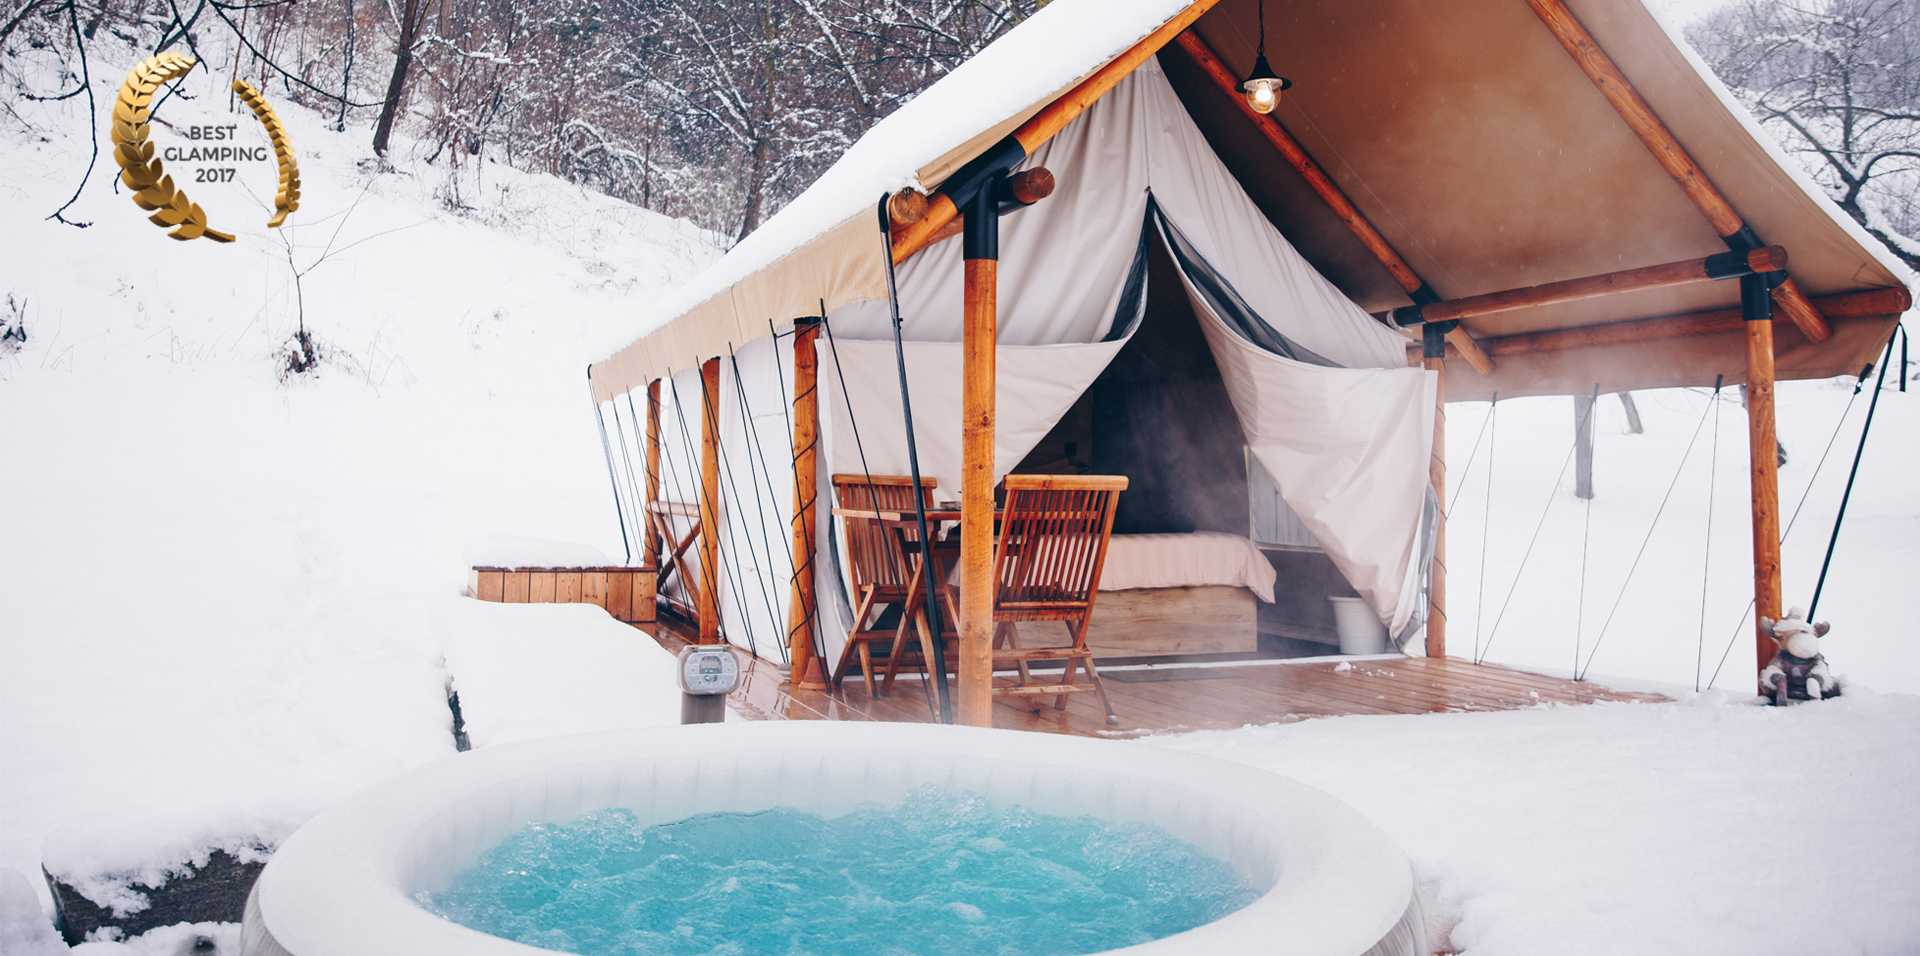 Winter Glamping fairytale